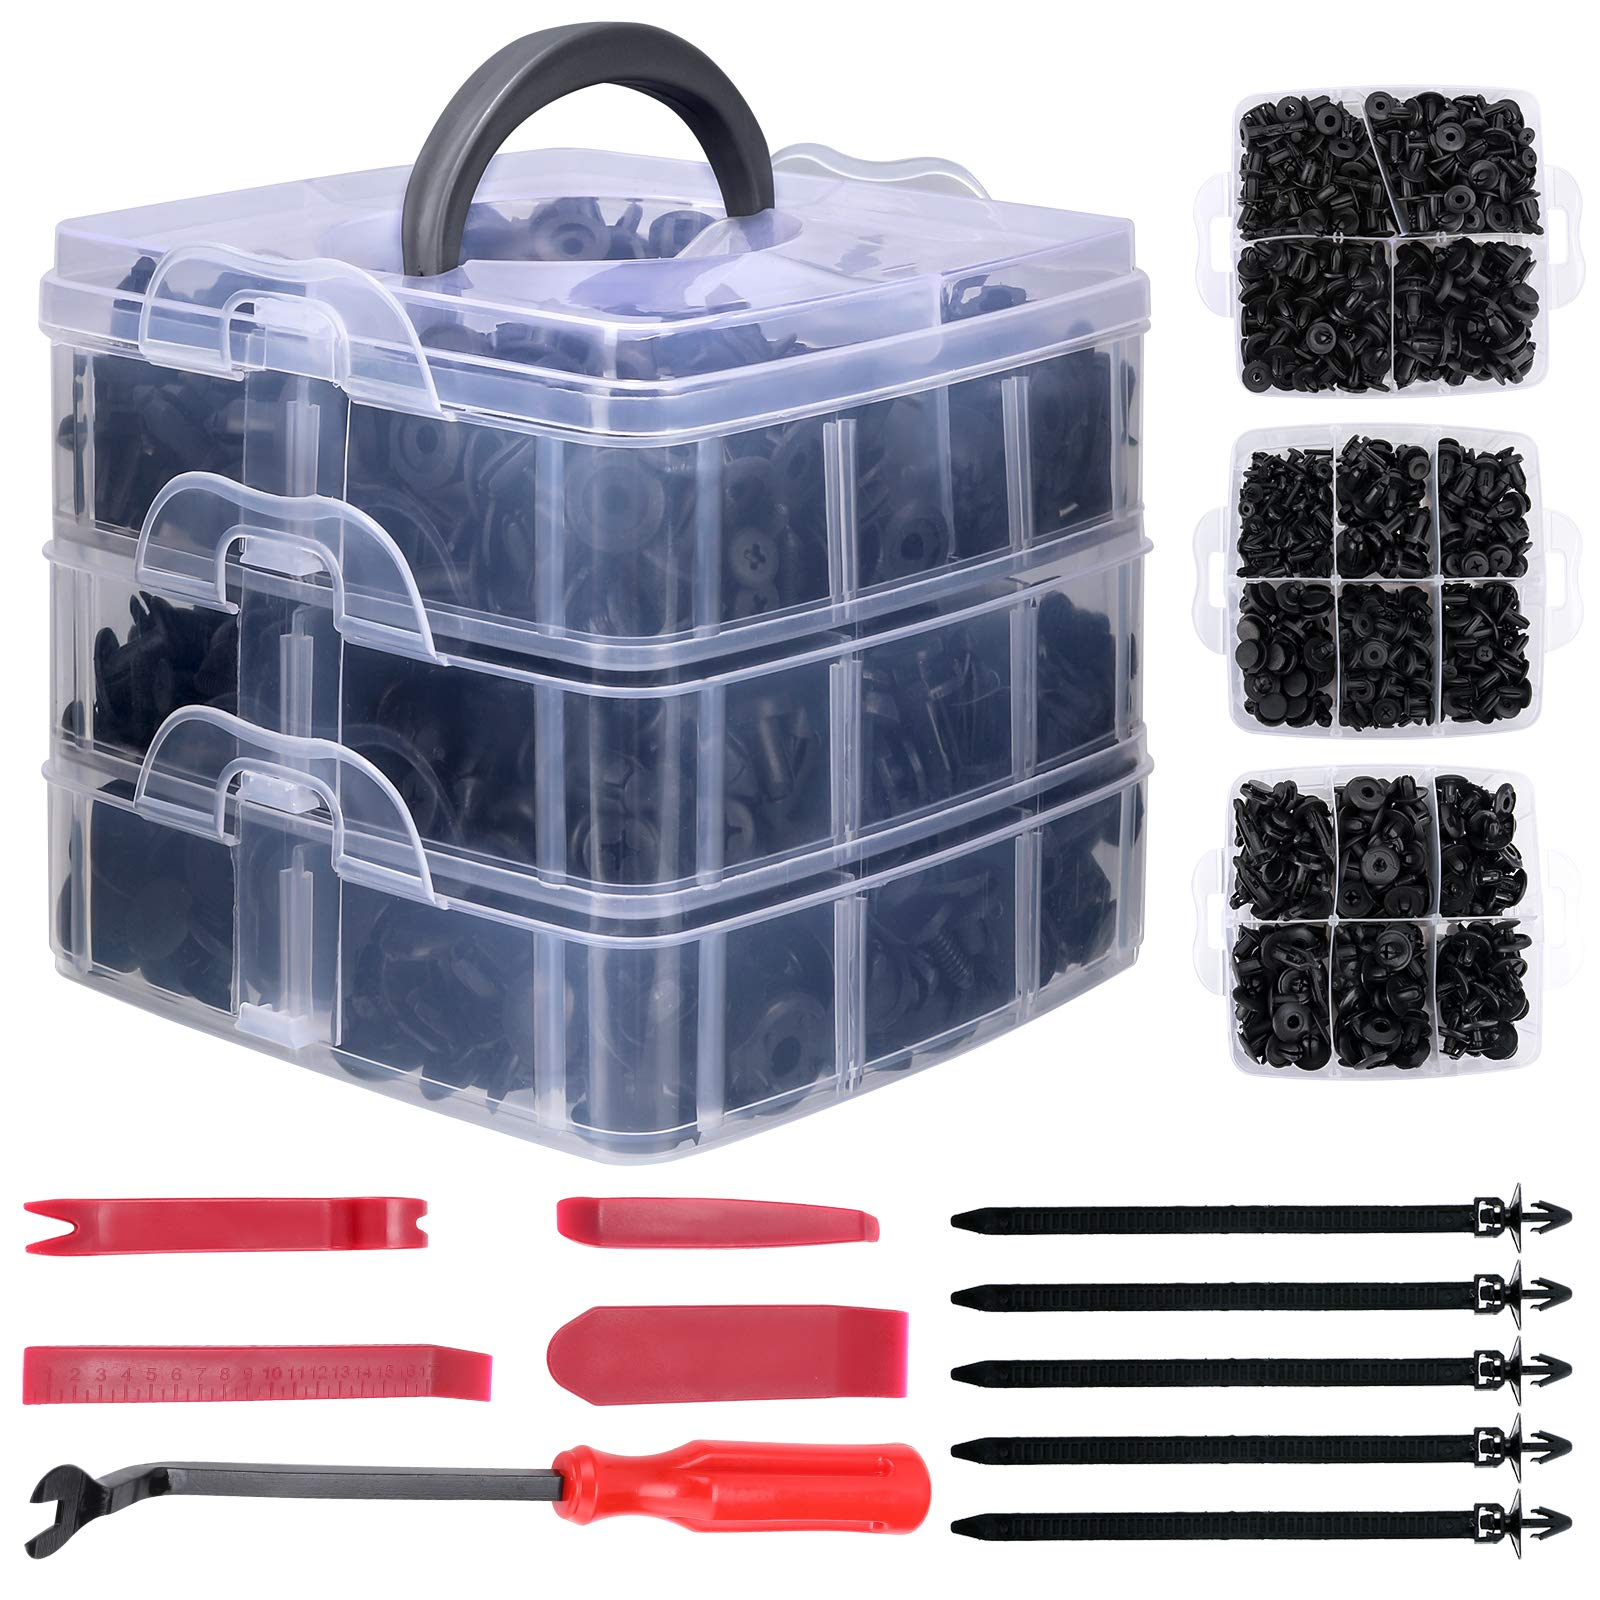 Gafild Car Retainer Clips, 635 Pcs 16 Sizes Car Trim Clips Plastic Fasteners Kit Nylon Clips Rivet Car Body Trim Clips Assortment with Fastener Remover Tools, Cable Ties, Bumper Push Retainer